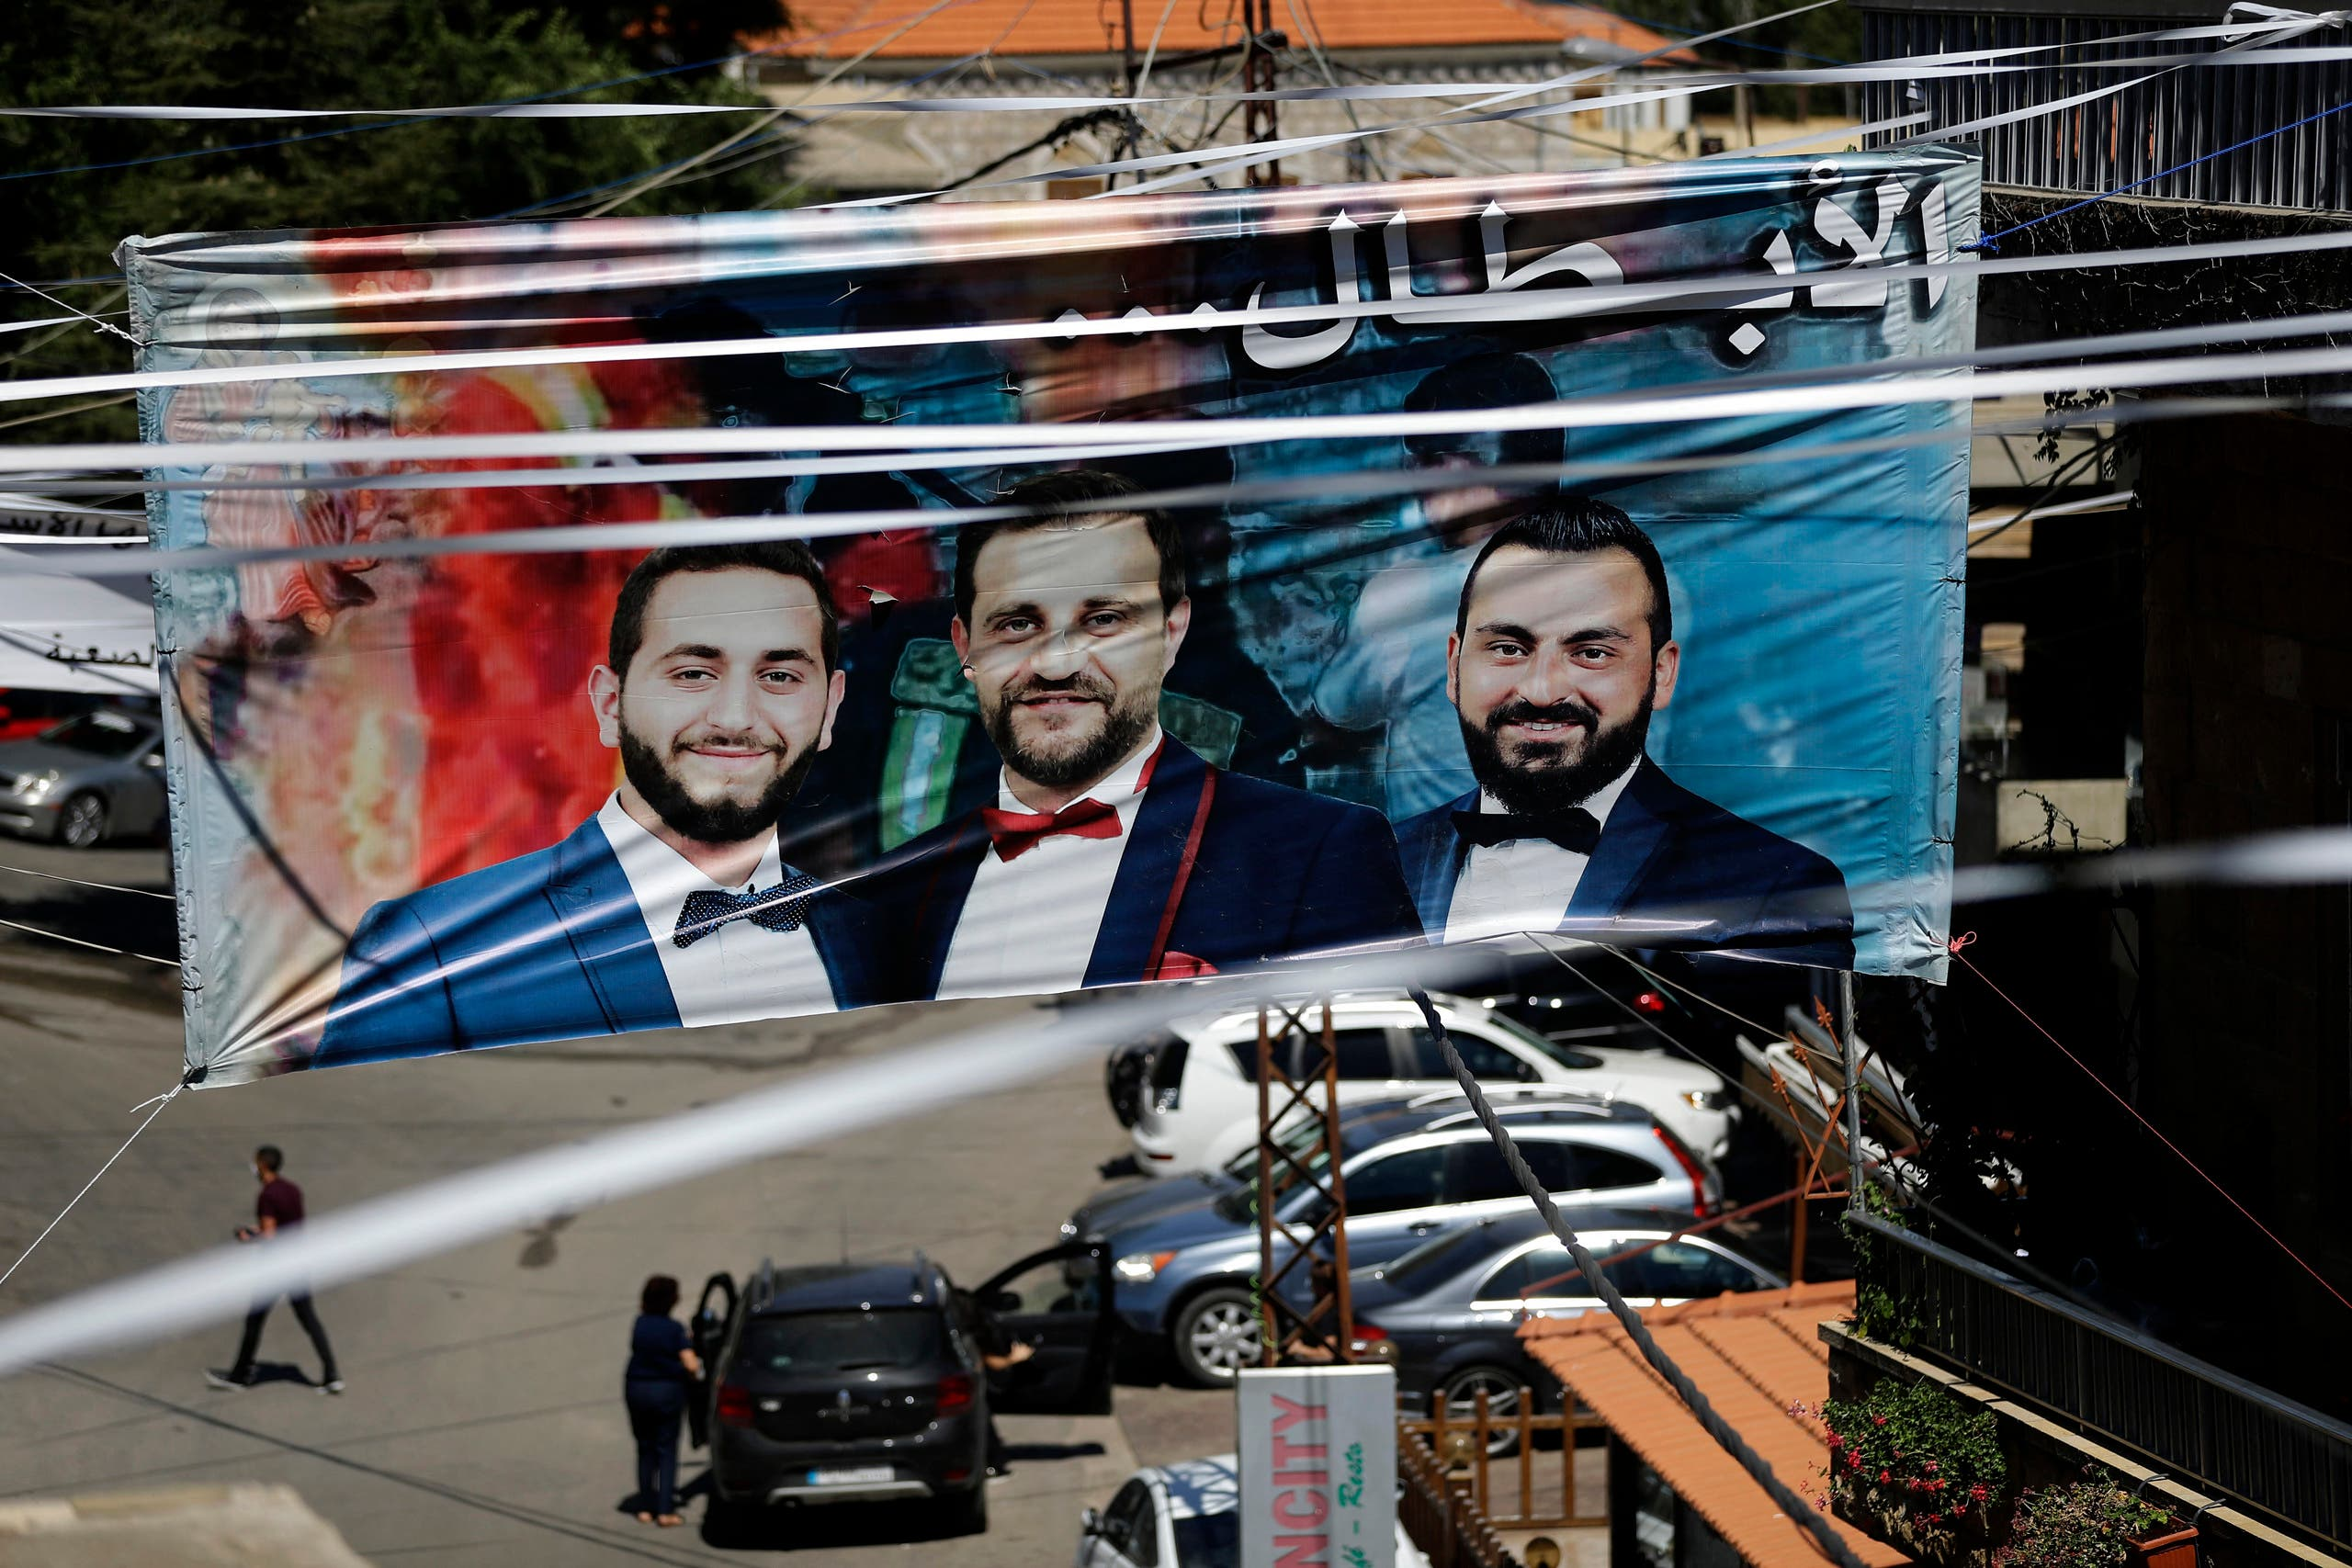 A banner bearing the portraits of firefighters Charbel Hitti, Charbel Karam, and Najib Hitti is seen hanging during their funeral procession in their hometown of Qartaba, north of the Lebanese capital Beirut, on August 17, 2020. (AFP)